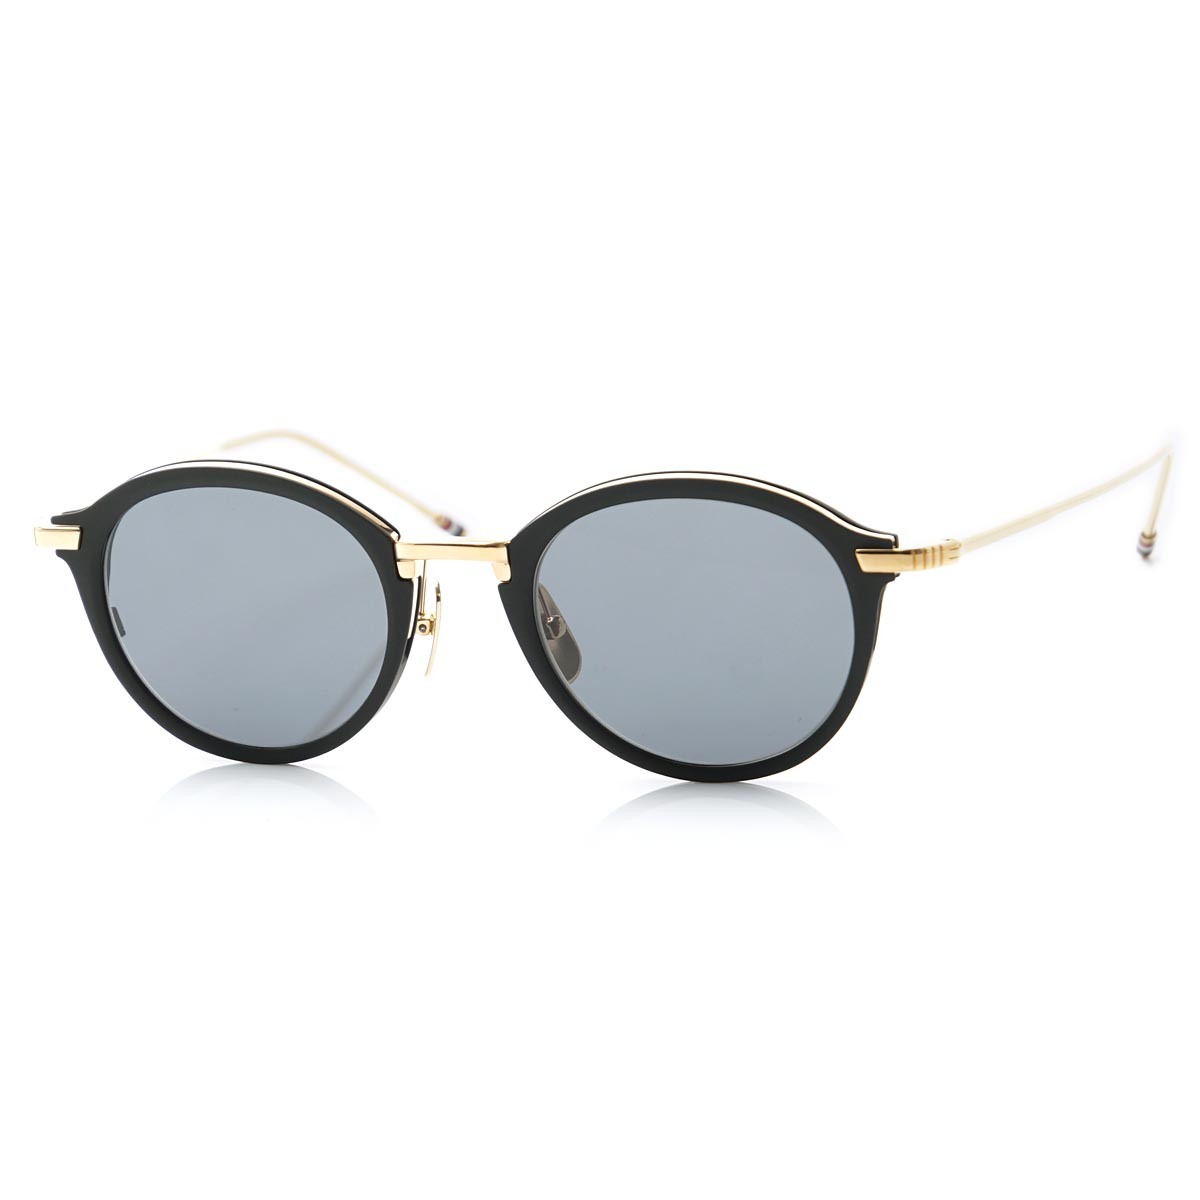 44d560fc31a Modern Blue Rakuten Ichiba Shop  Tom Browne THOM BROWNE. Sunglasses ...